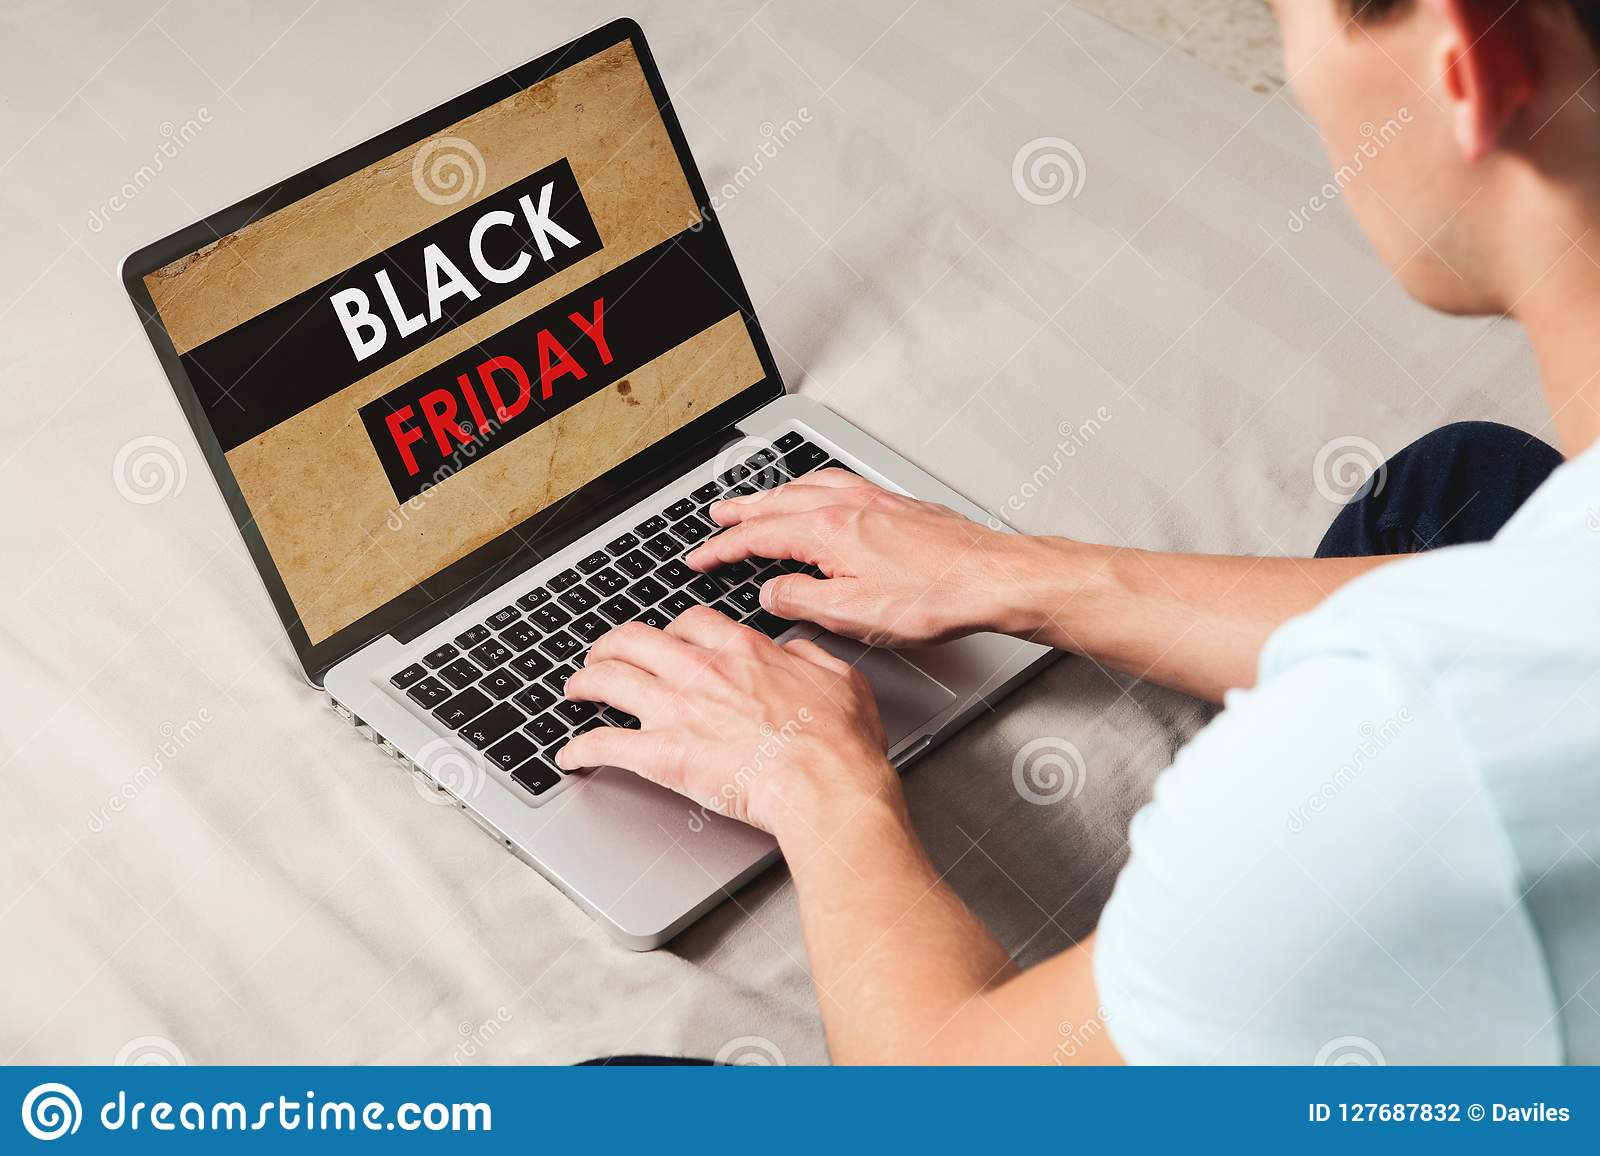 Man Shopping At Black Friday Special By The Internet With A Laptop While Sitting At Home Stock Photo Image Of Modern Offer 127687832